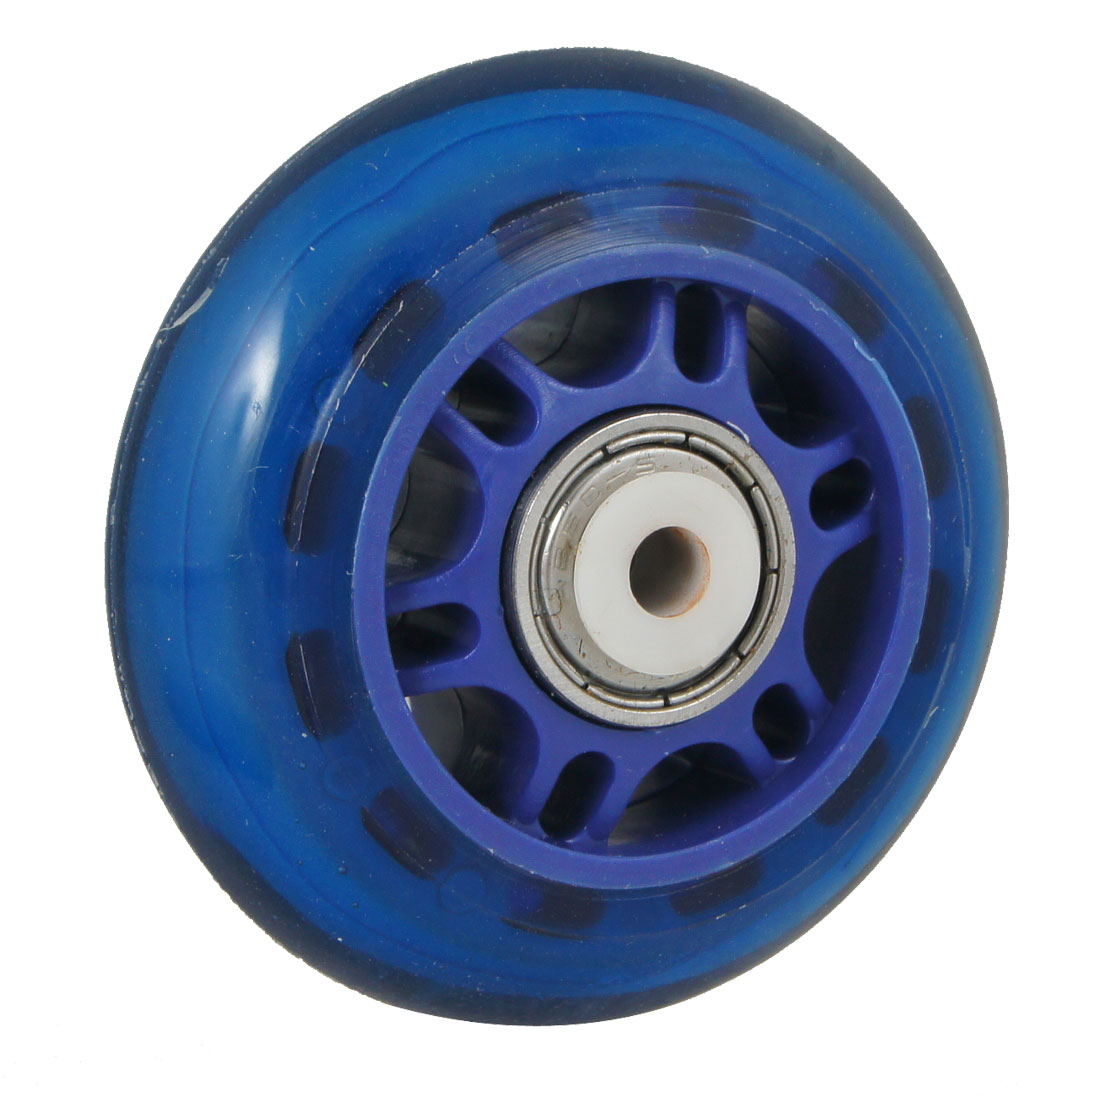 Clear-Blue-Plastic-70mm-Dia-Inline-608ZZ-Bearing-Single-Skate-Shoes-Wheel